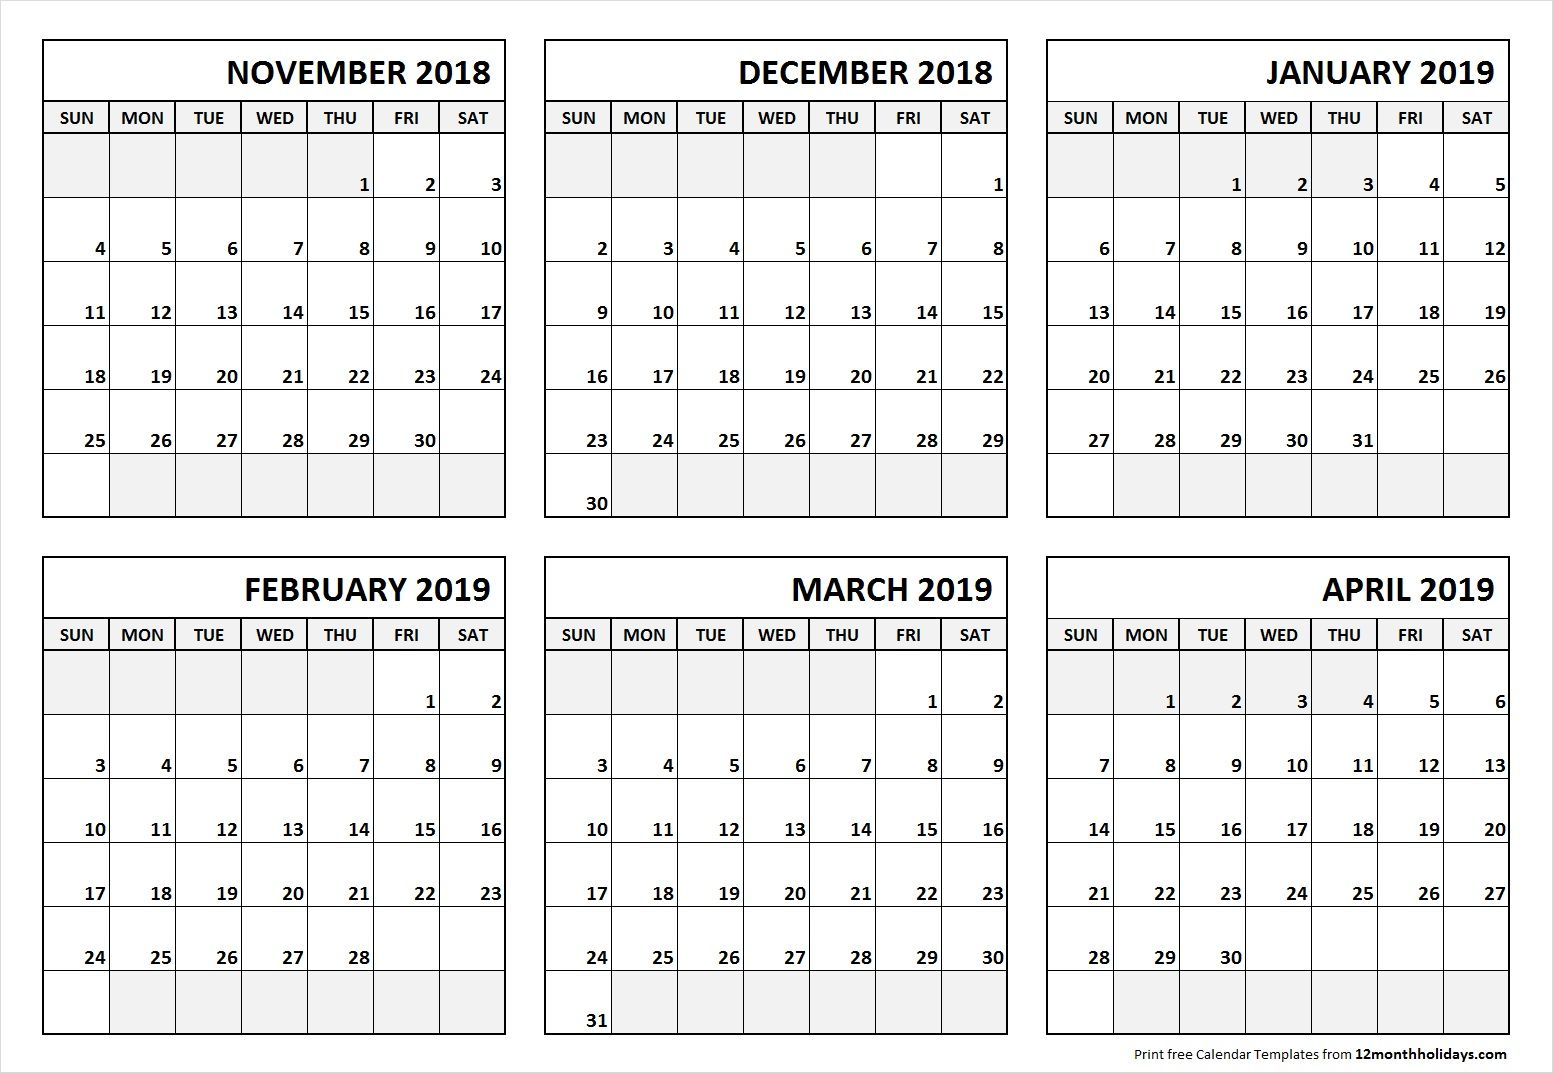 6 Month Calendar November 2018 To April 2019 | June 2019 with regard to Printable 6 Month Calendar